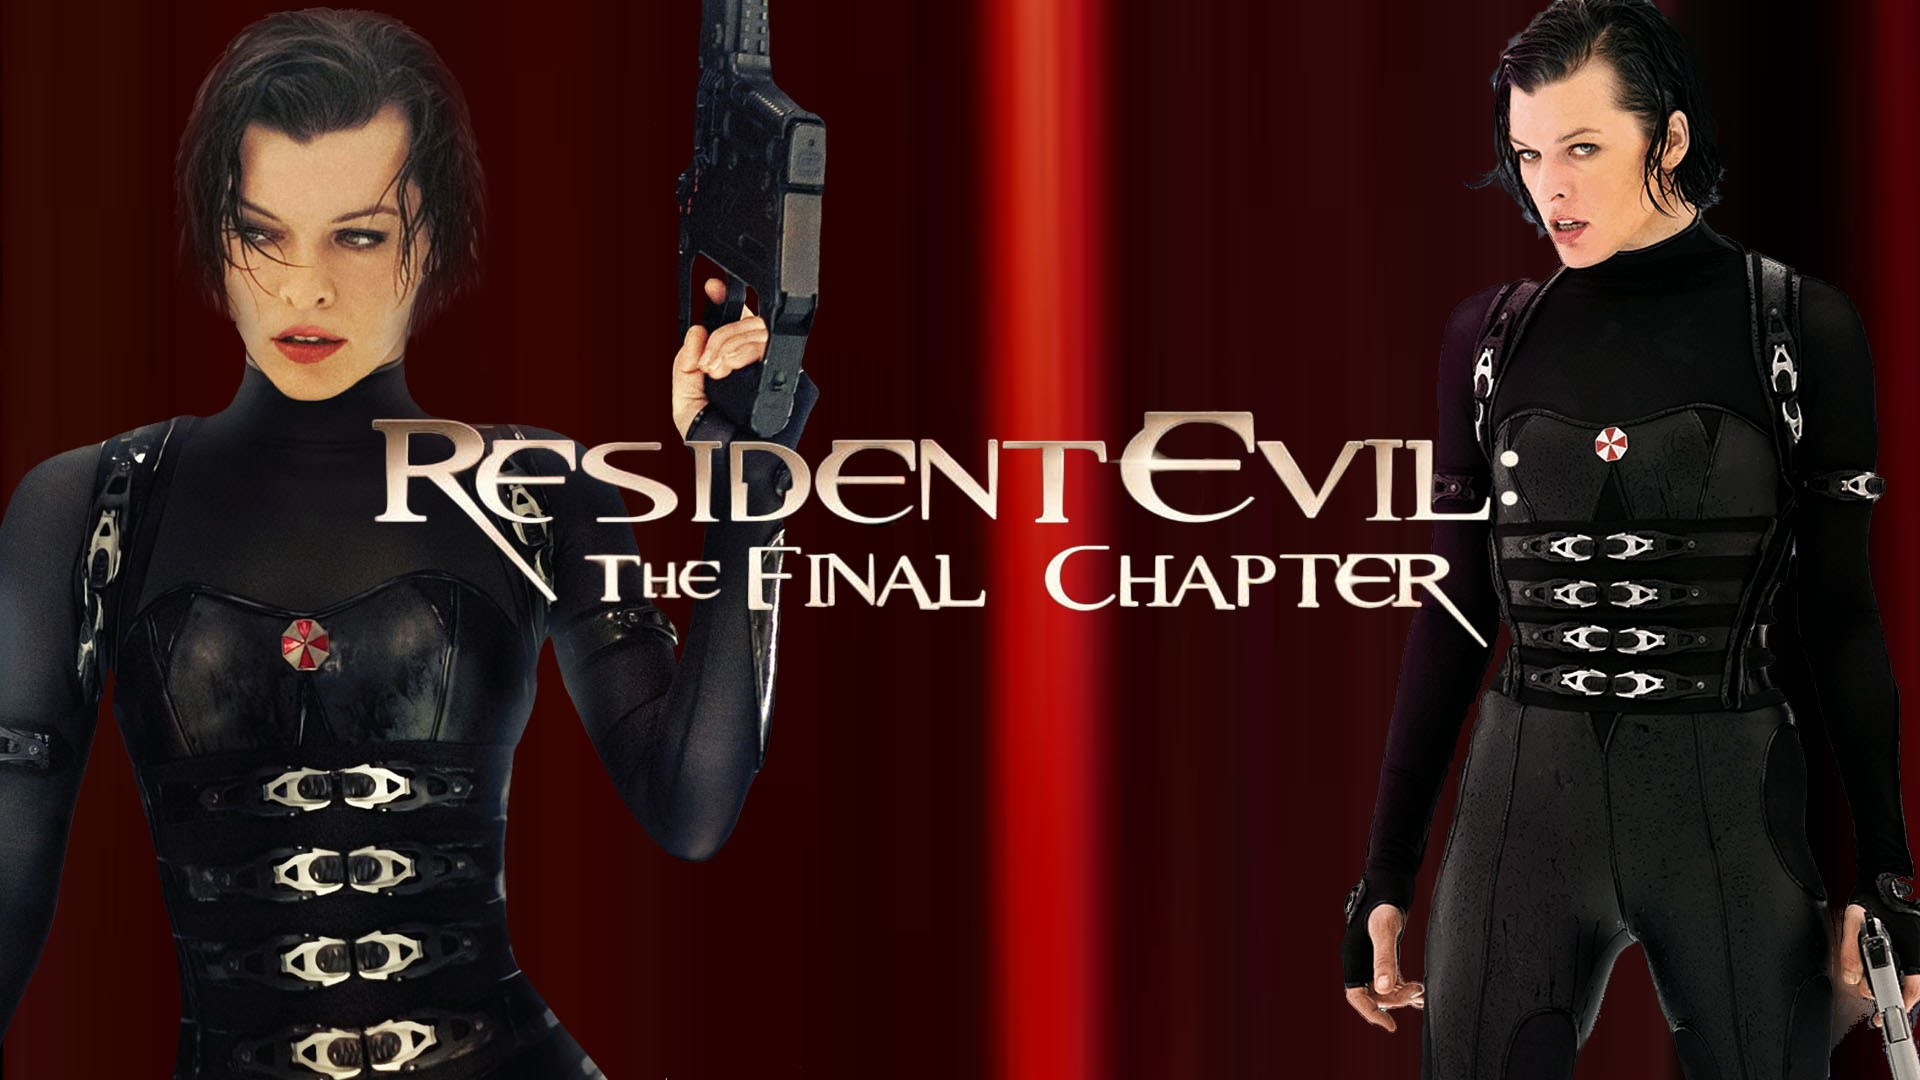 Hd wallpaper resident evil -  Resident Evil The Final Chapter High Quality Wallpapers